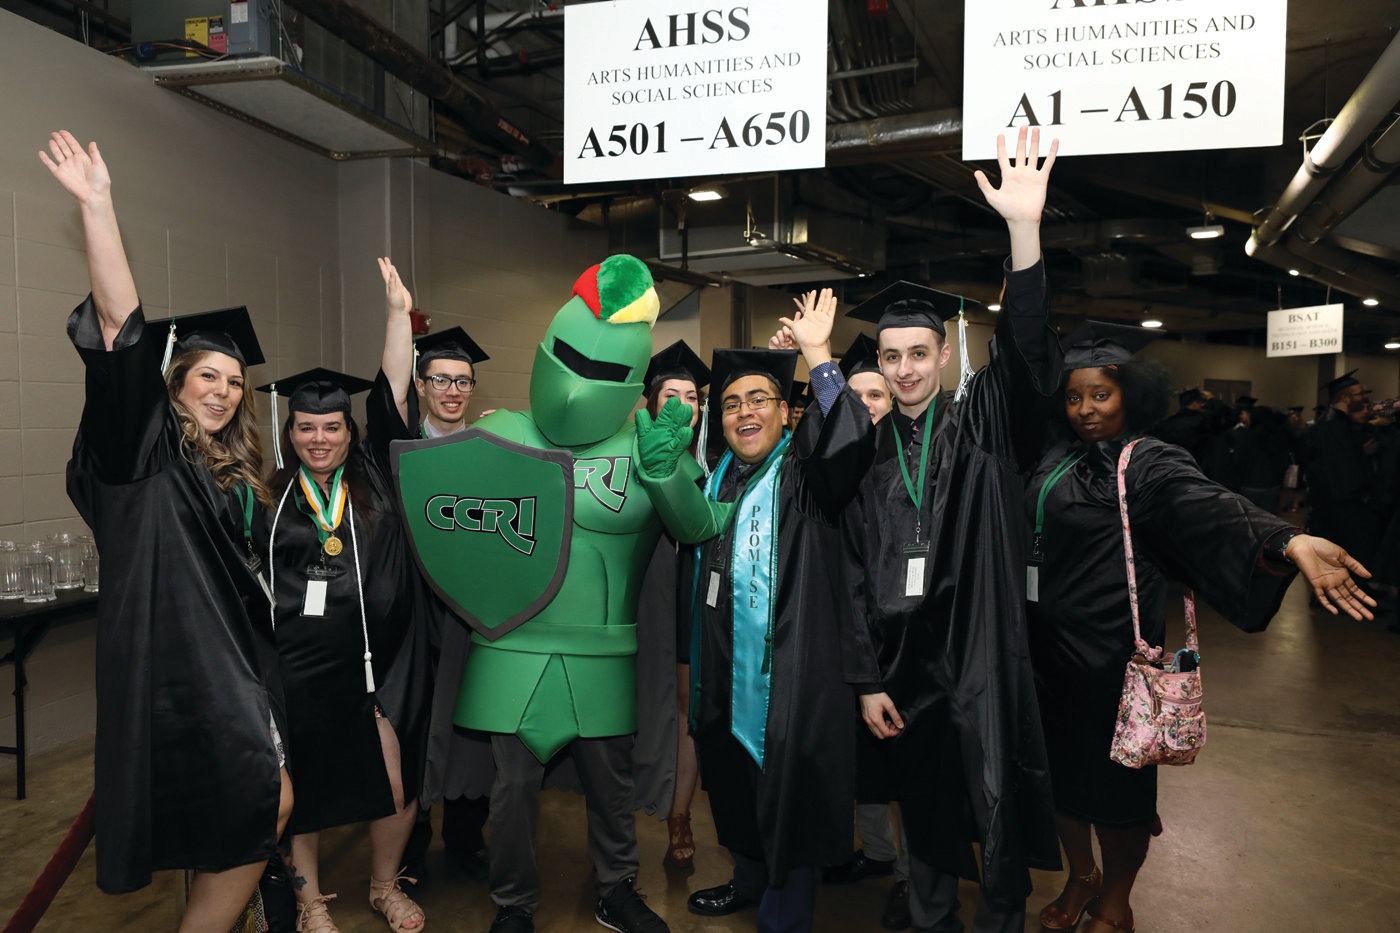 PROUD KNIGHTS: Members of CCRI's graduating class share a moment with the school's mascot ahead of the May 16 commencement ceremony at the Dunkin' Donuts Center.